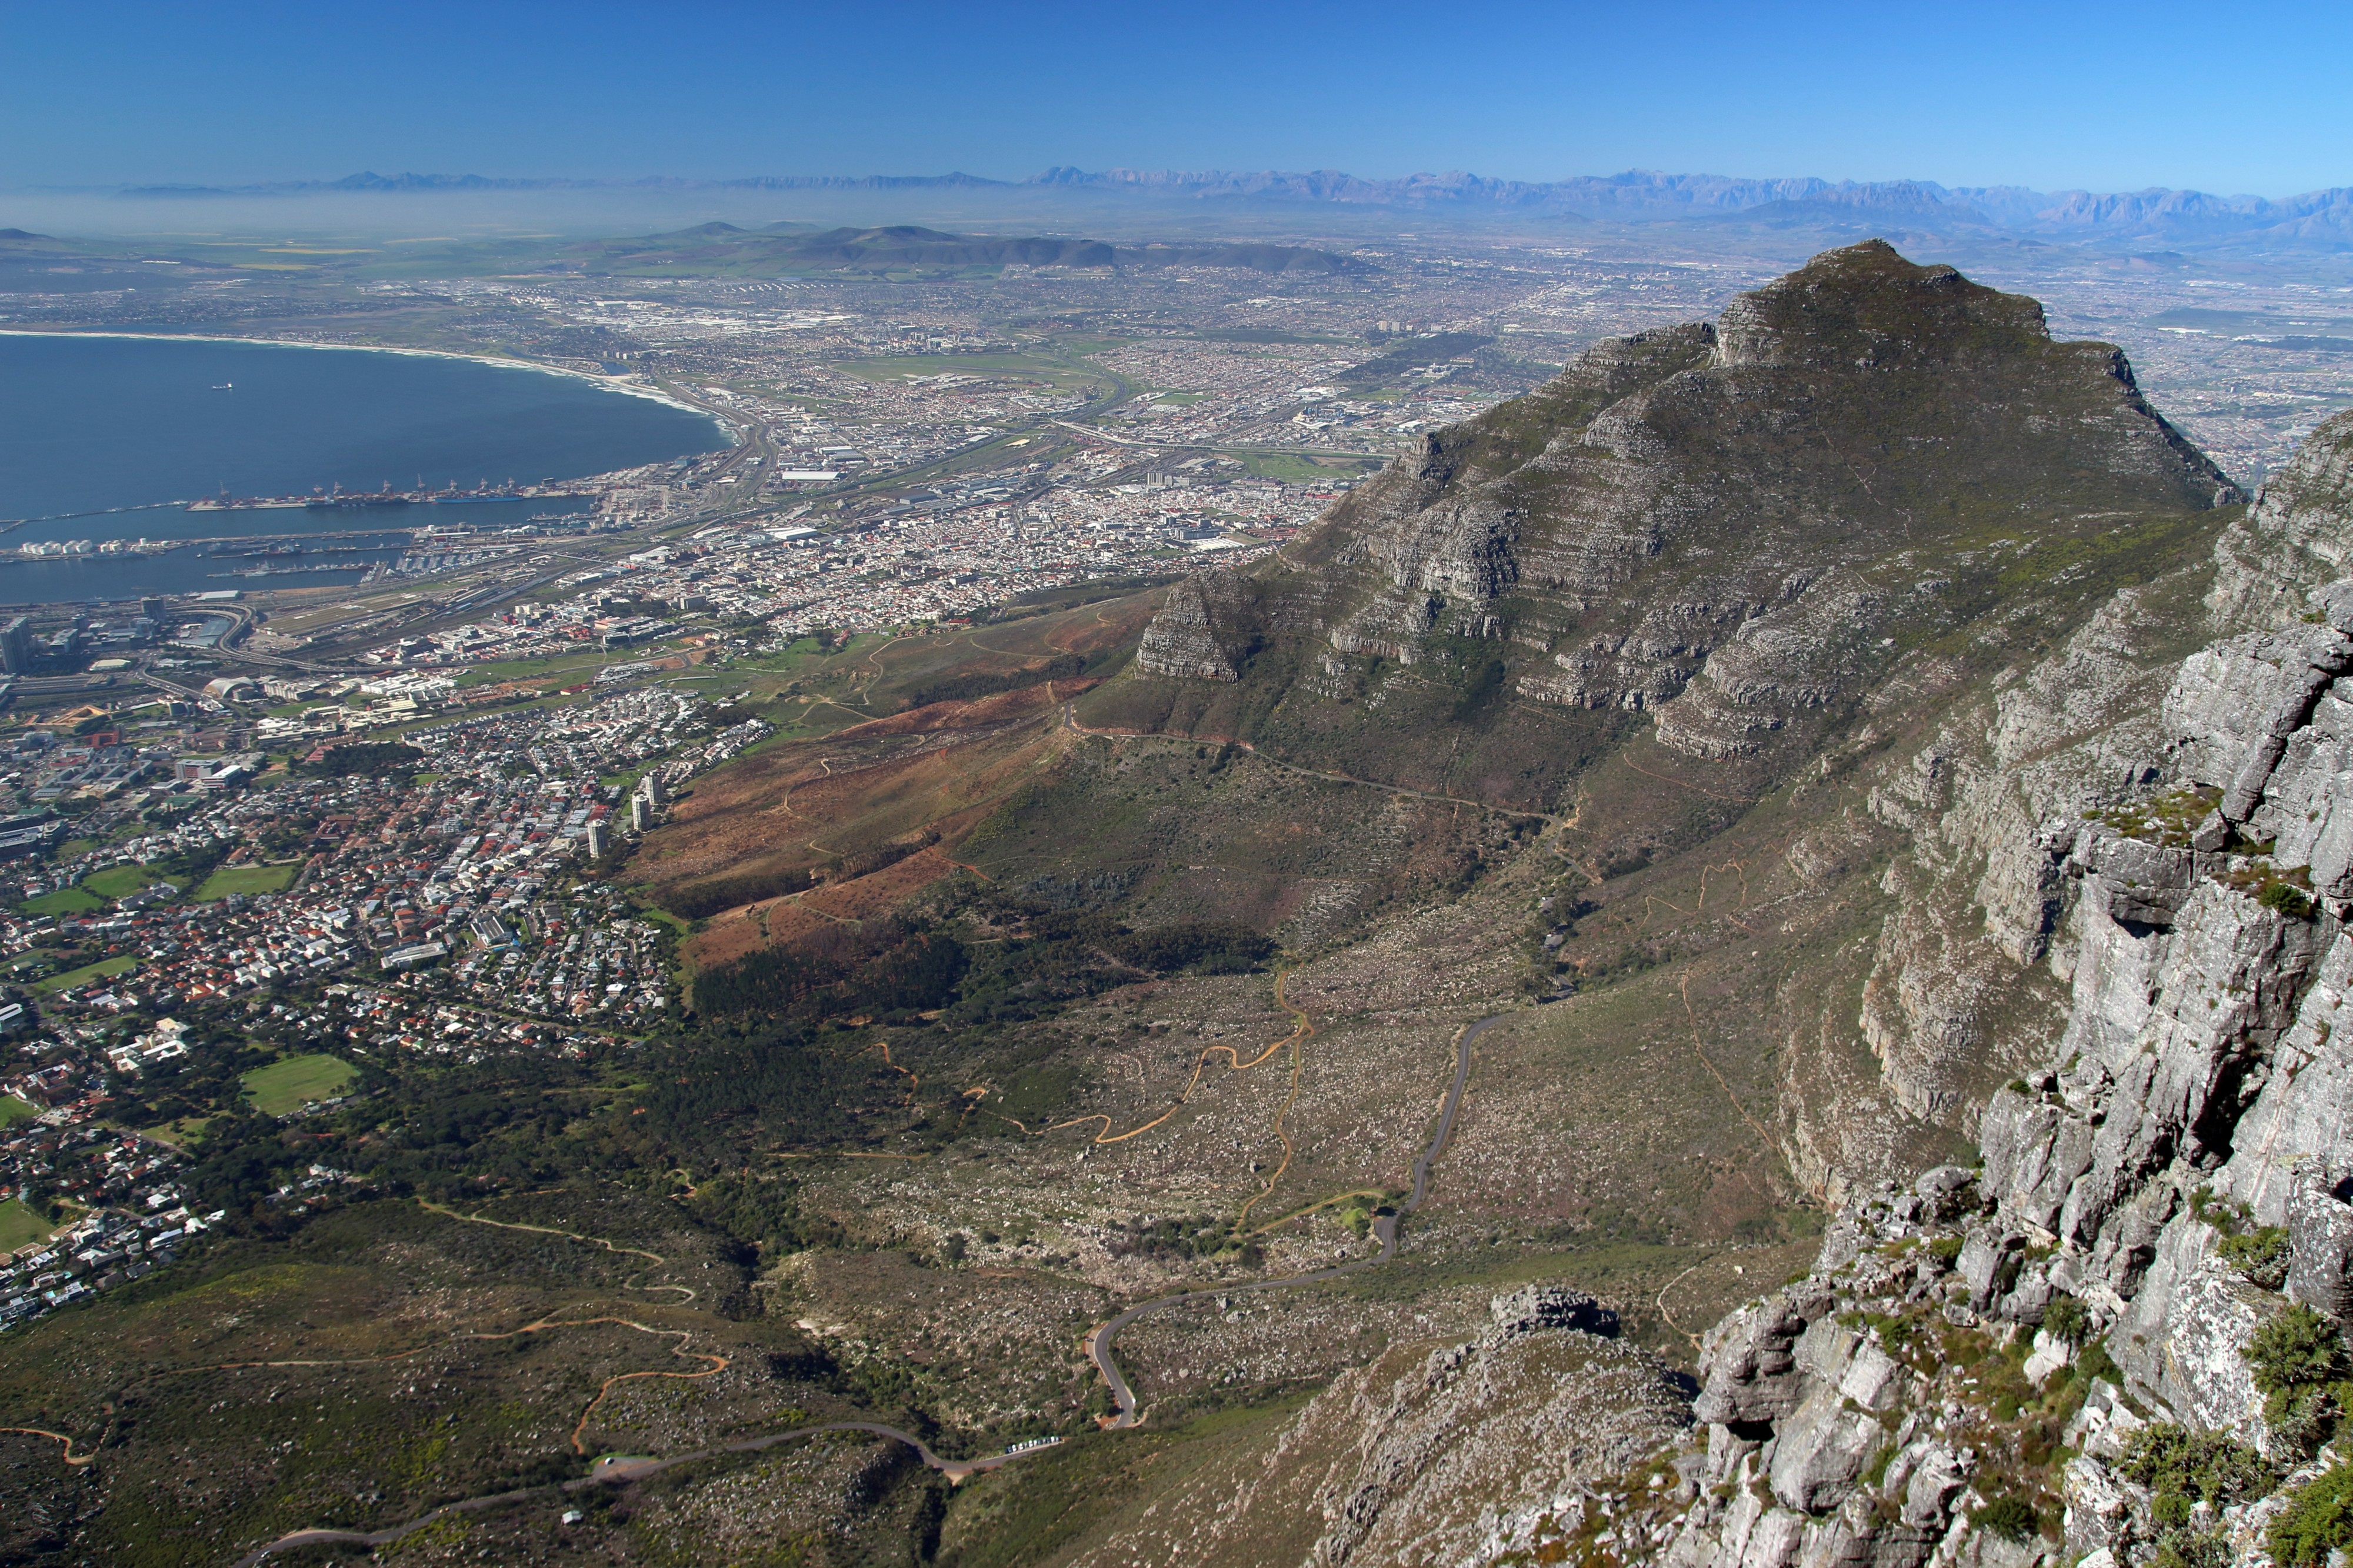 Table Mountain, Cape Town, South Africa (37002198605)